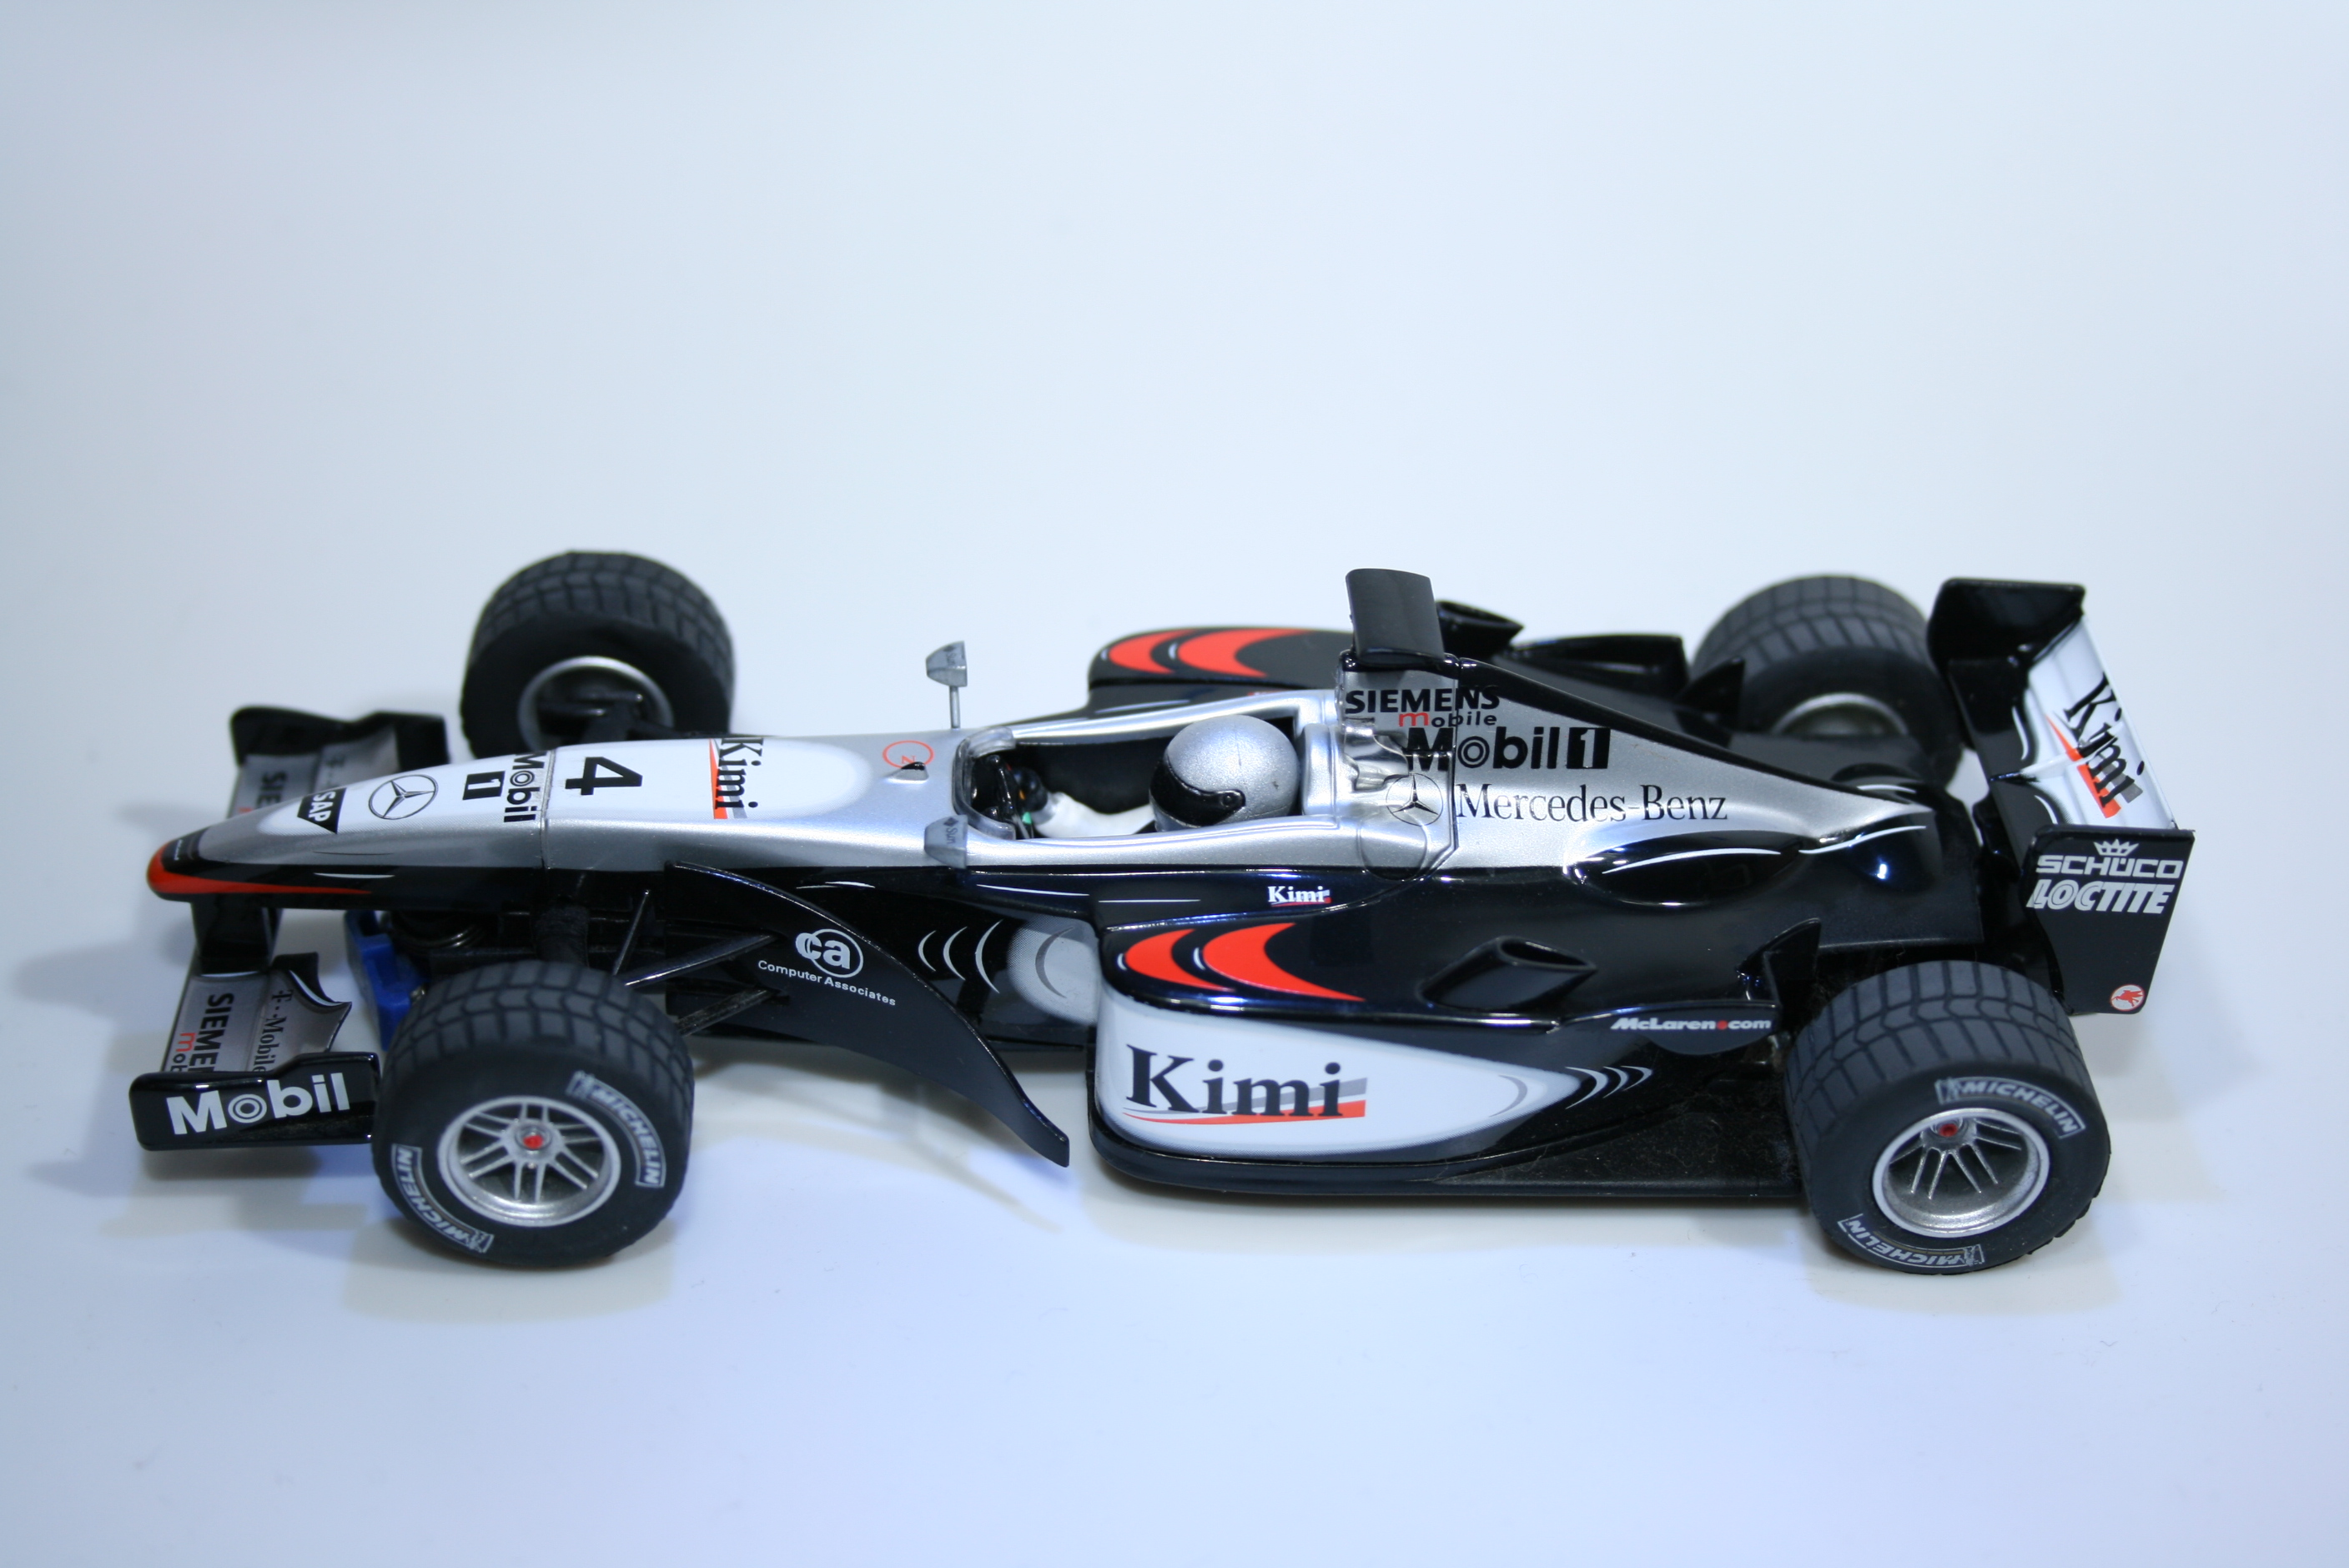 51 Mclaren MP4/17 2002 K Raikkonen Scalextric C2416 2002 Boxed